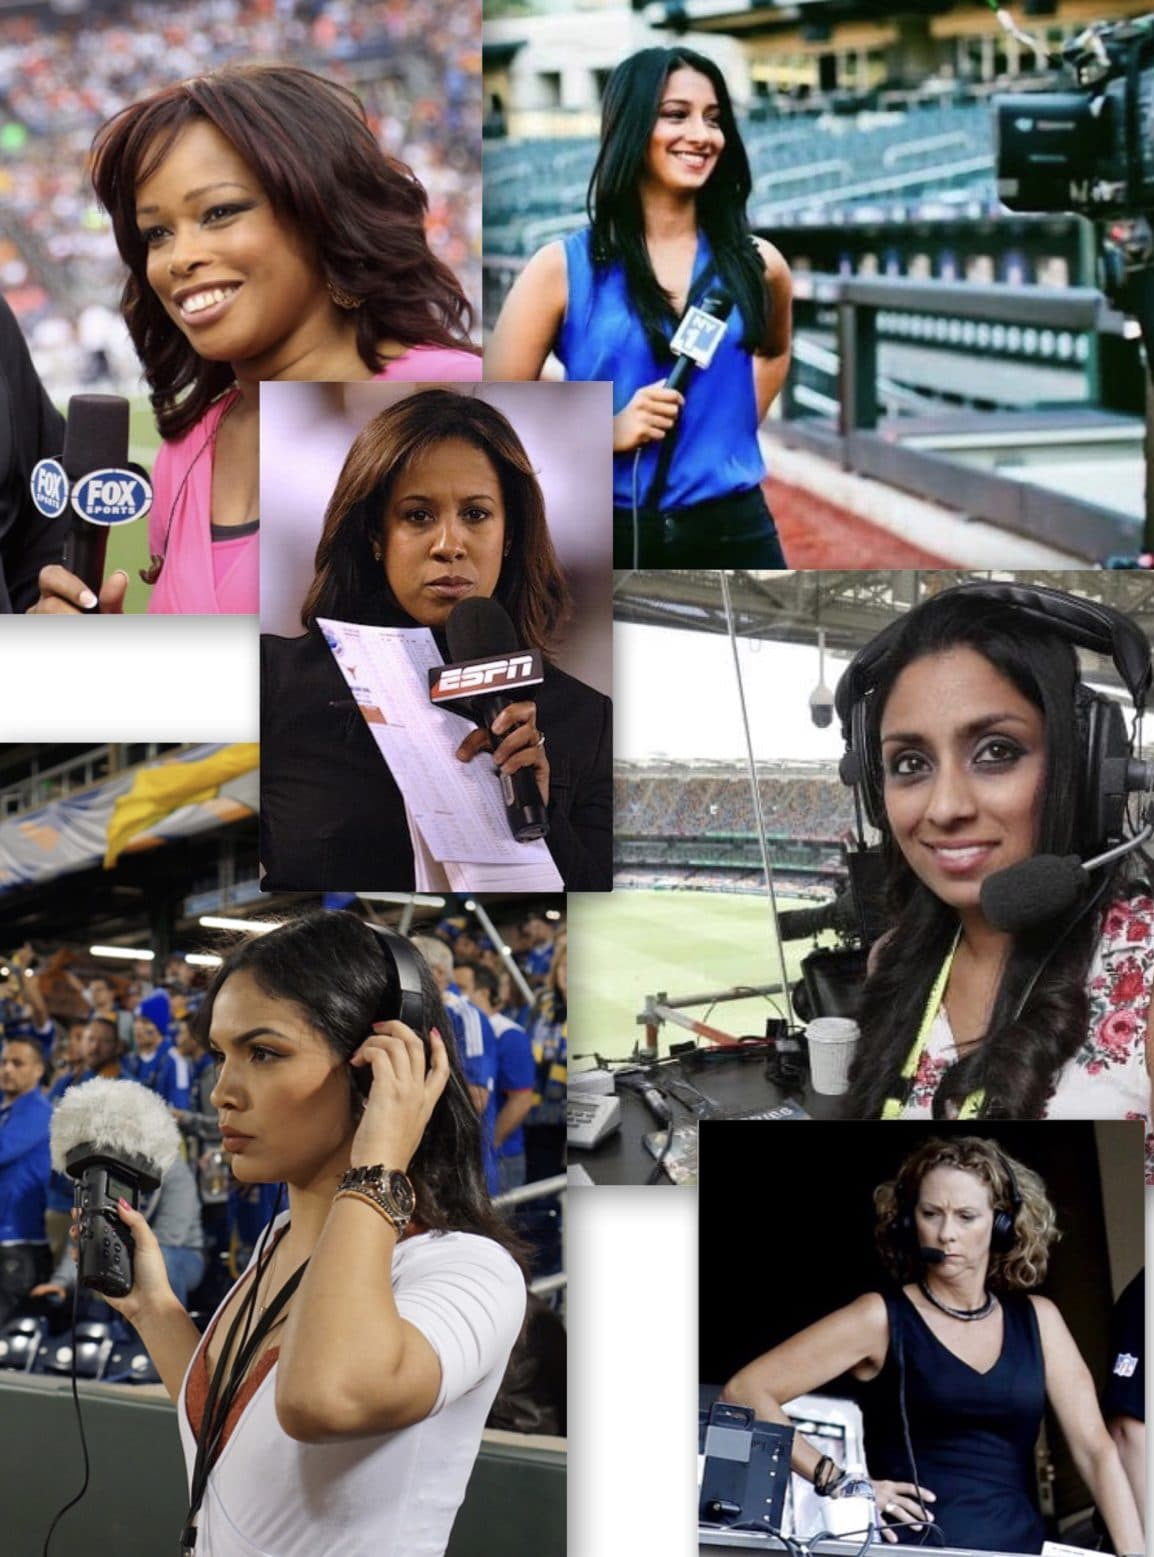 I am A Female Sports Journalist